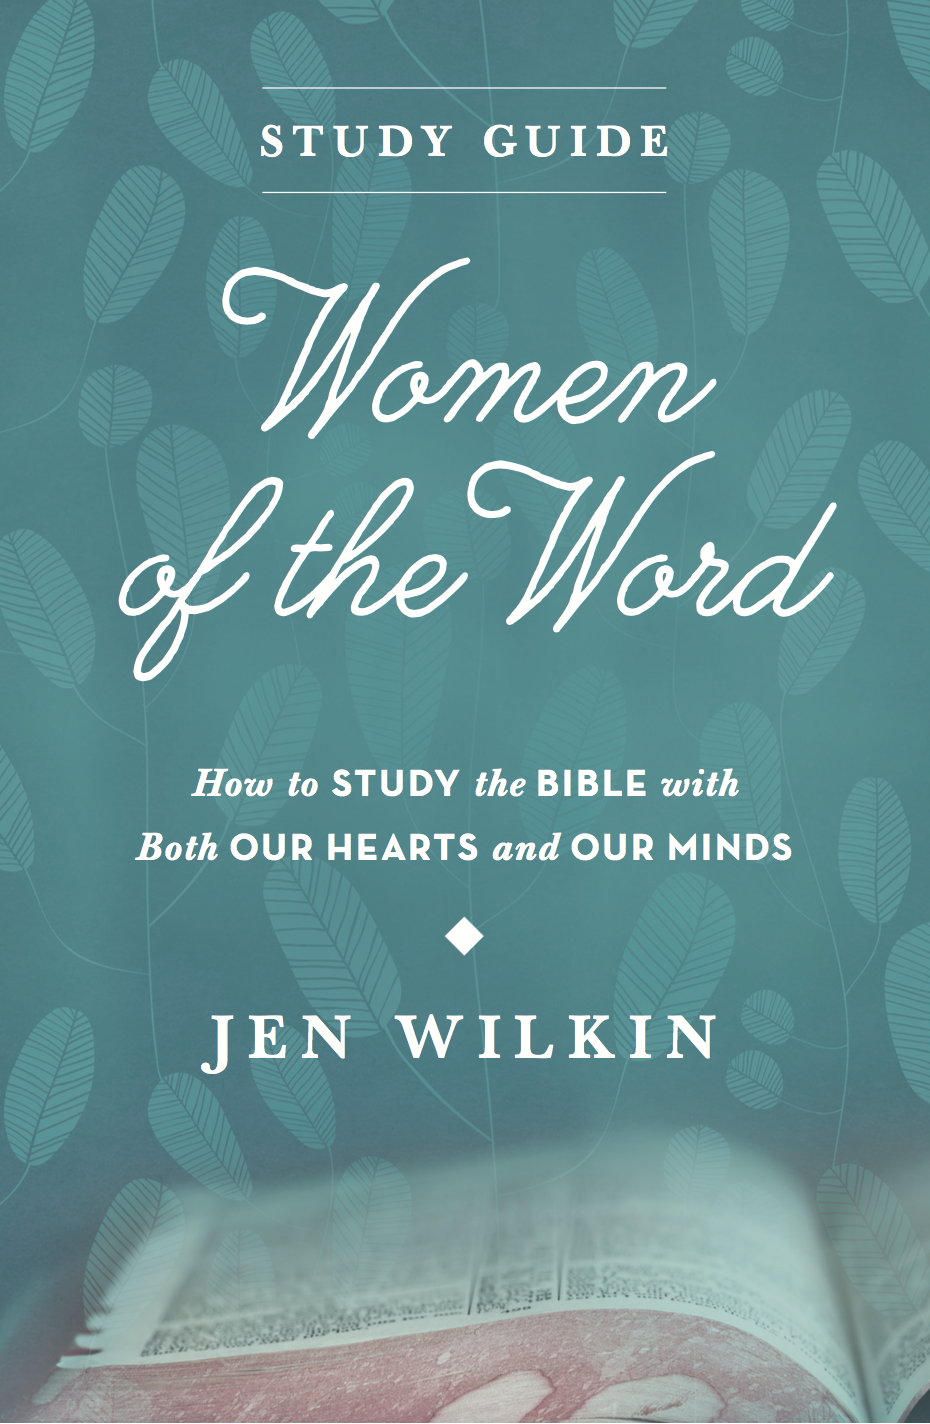 Women of The Word - Study Guide